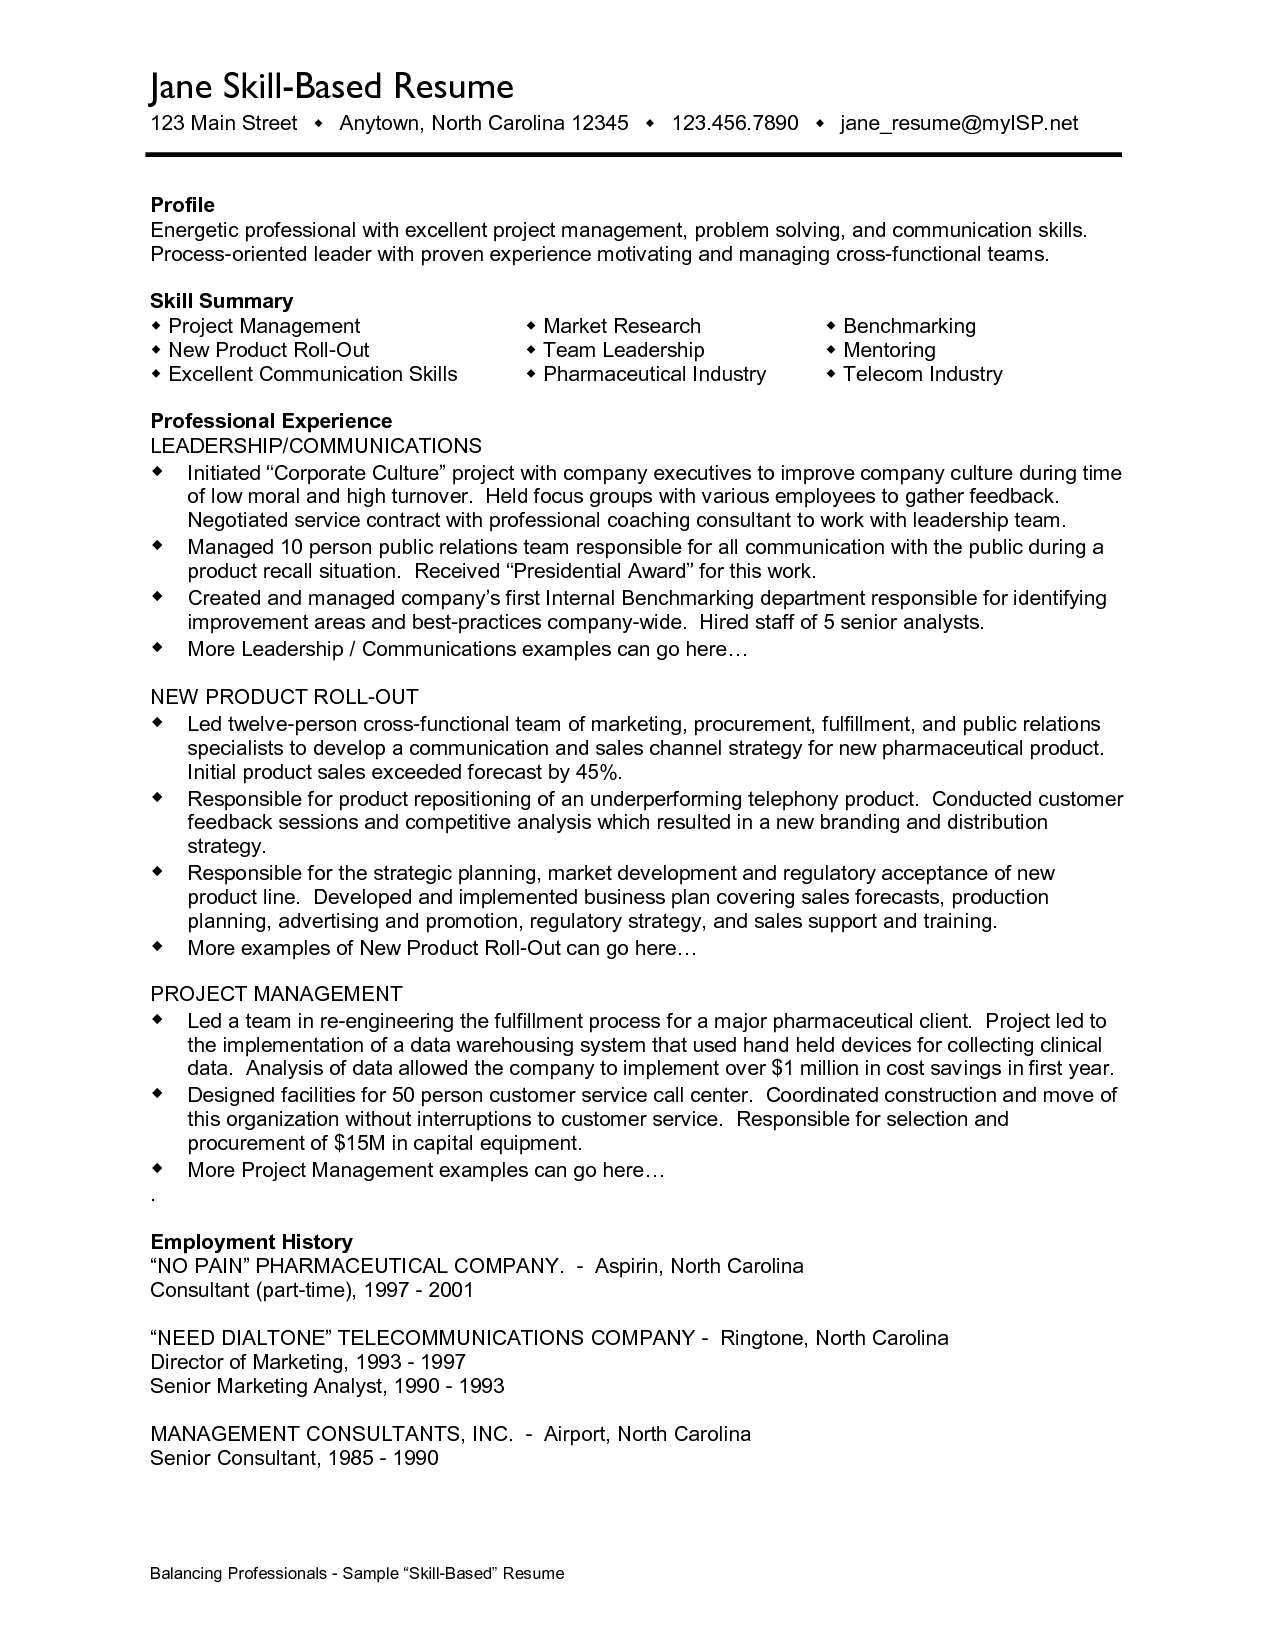 Skills And Abilities For Resume Job Resume Communication Skills  Httpwwwresumecareerjob